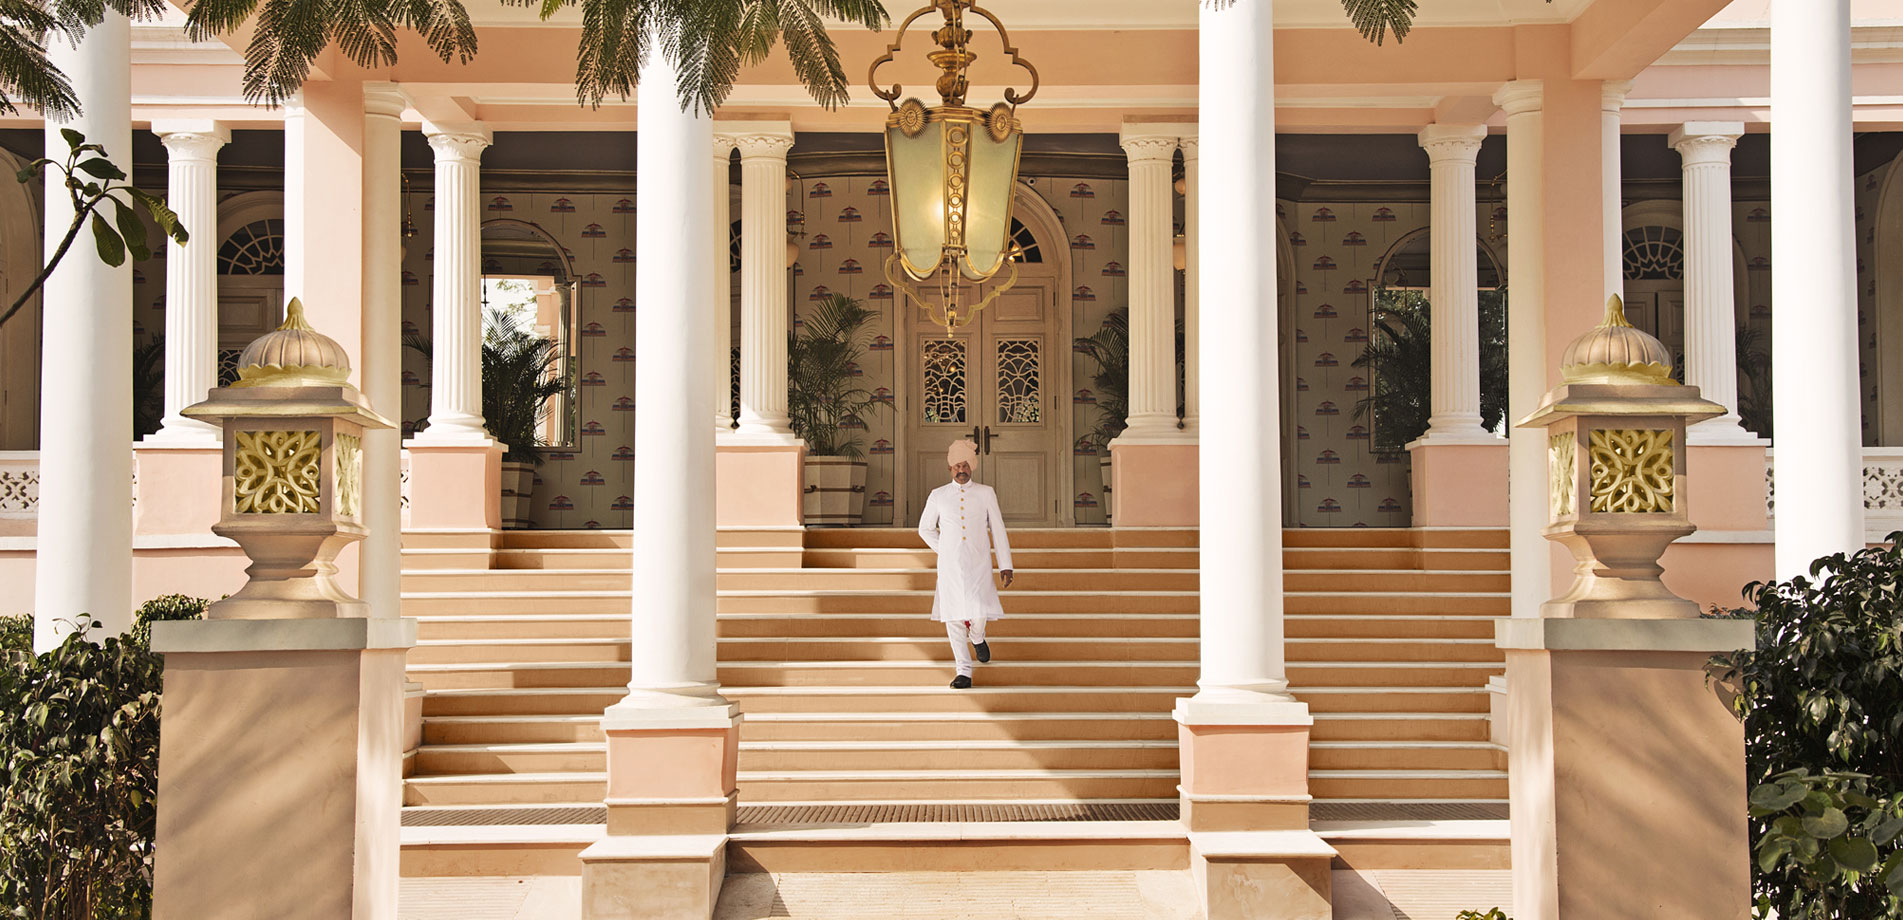 Feel historic touch by staying at sujan rajmahal palace for Home architecture jaipur